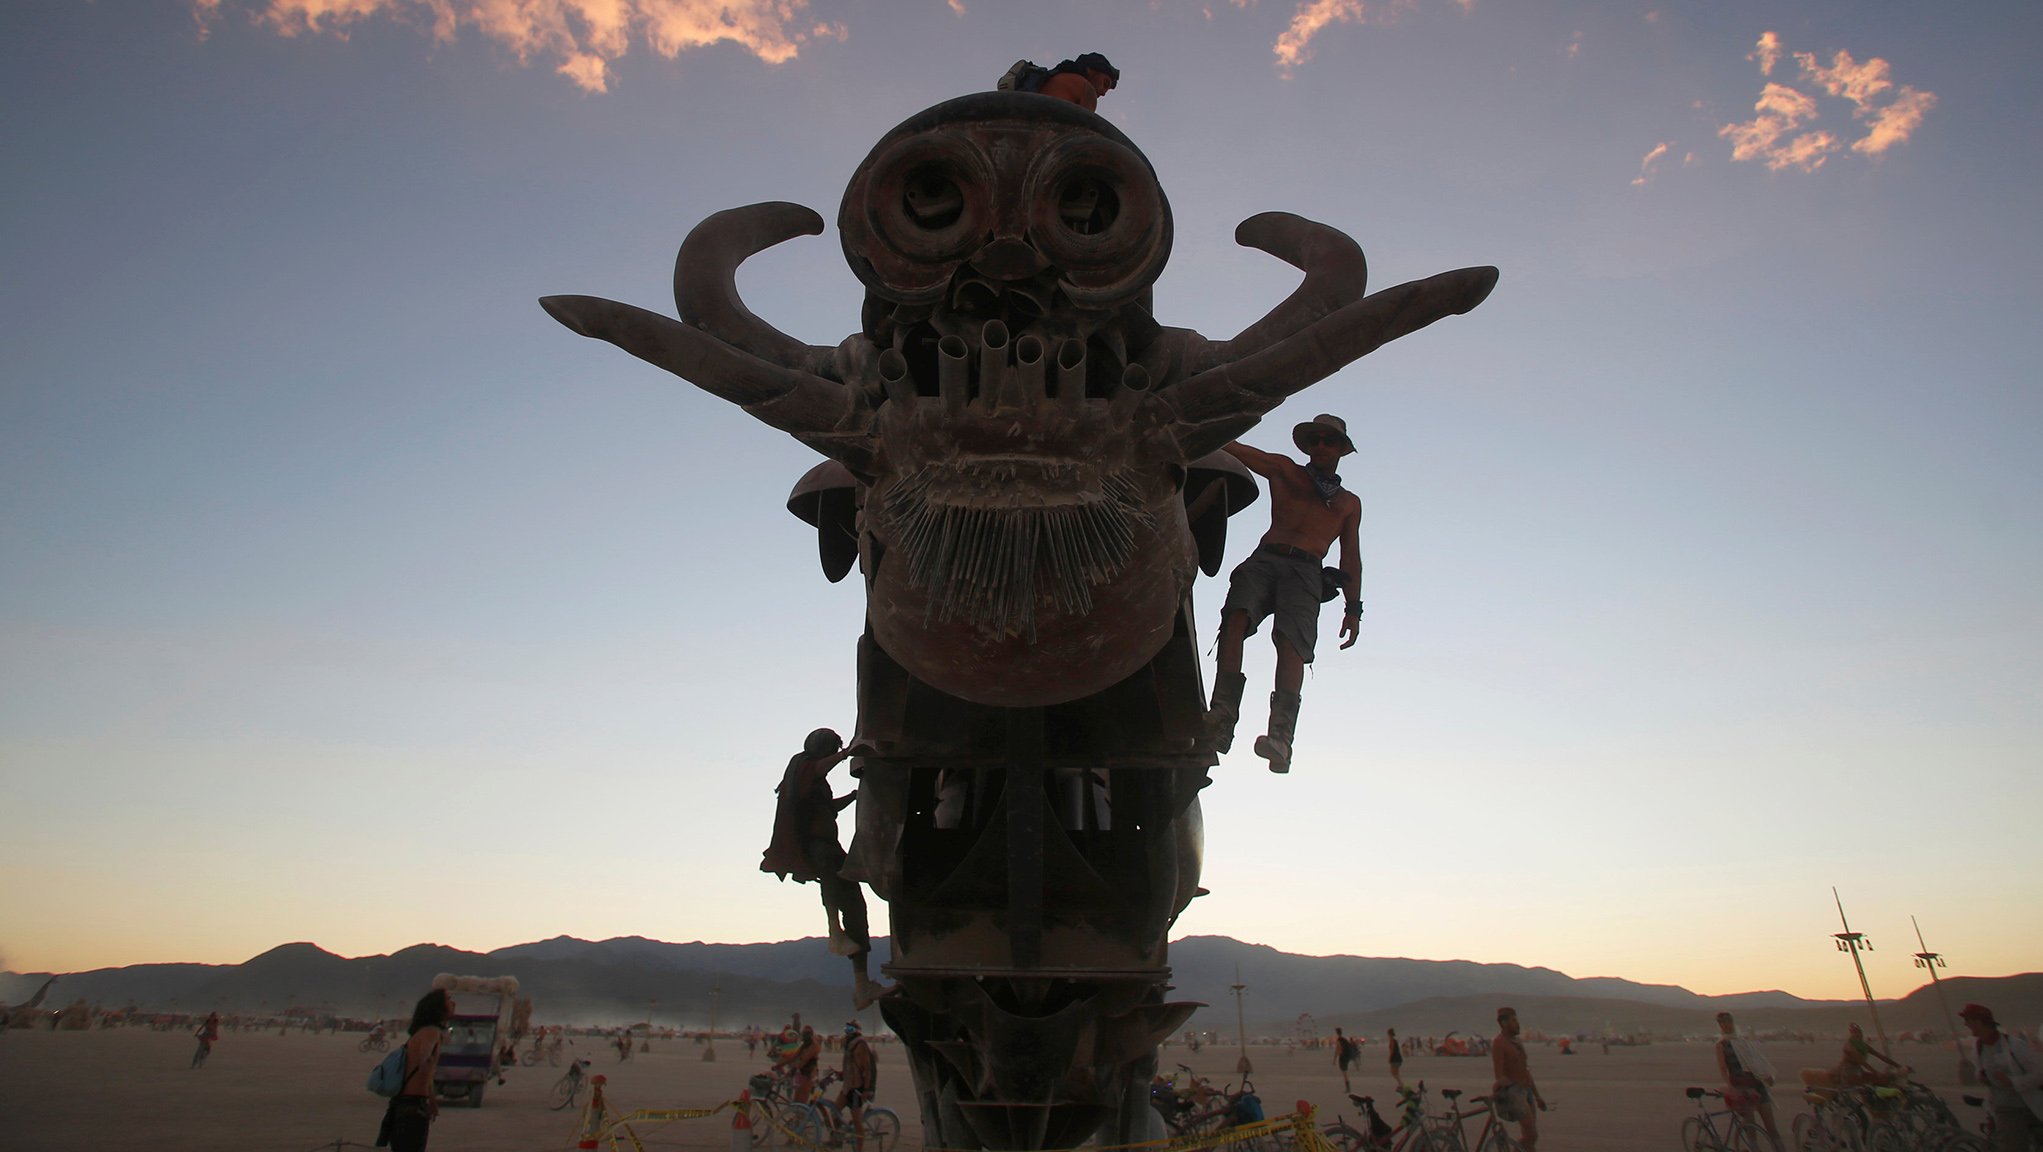 Participants climb on an art installation as approximately 70,000 people from all over the world gather for the 30th annual Burning Man arts and music festival in the Black Rock Desert of Nevada, U.S.